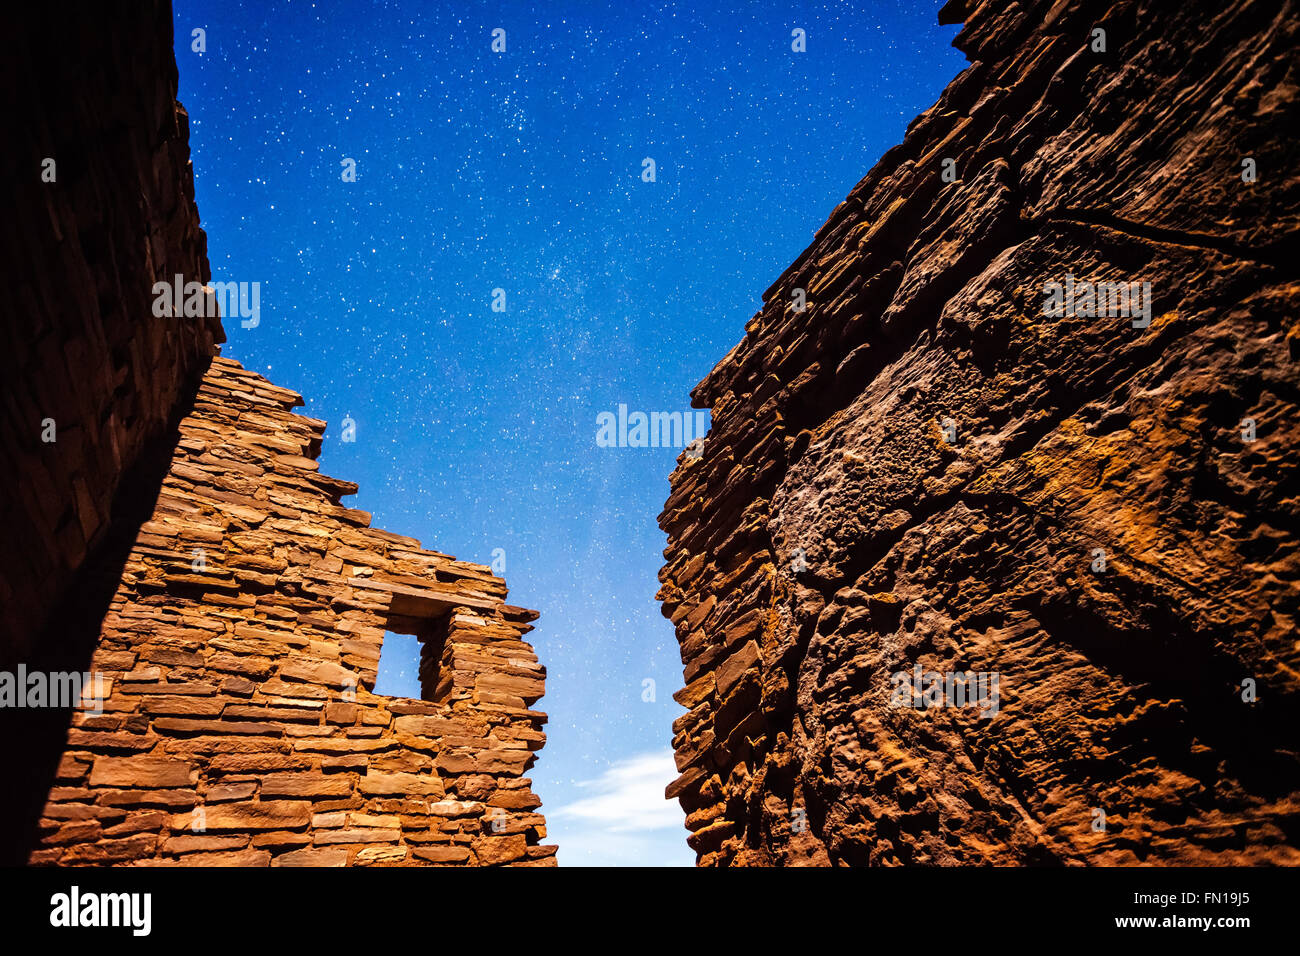 Stars in the sky at night above an 800 year old native american pueblo in northern Arizona - Stock Image